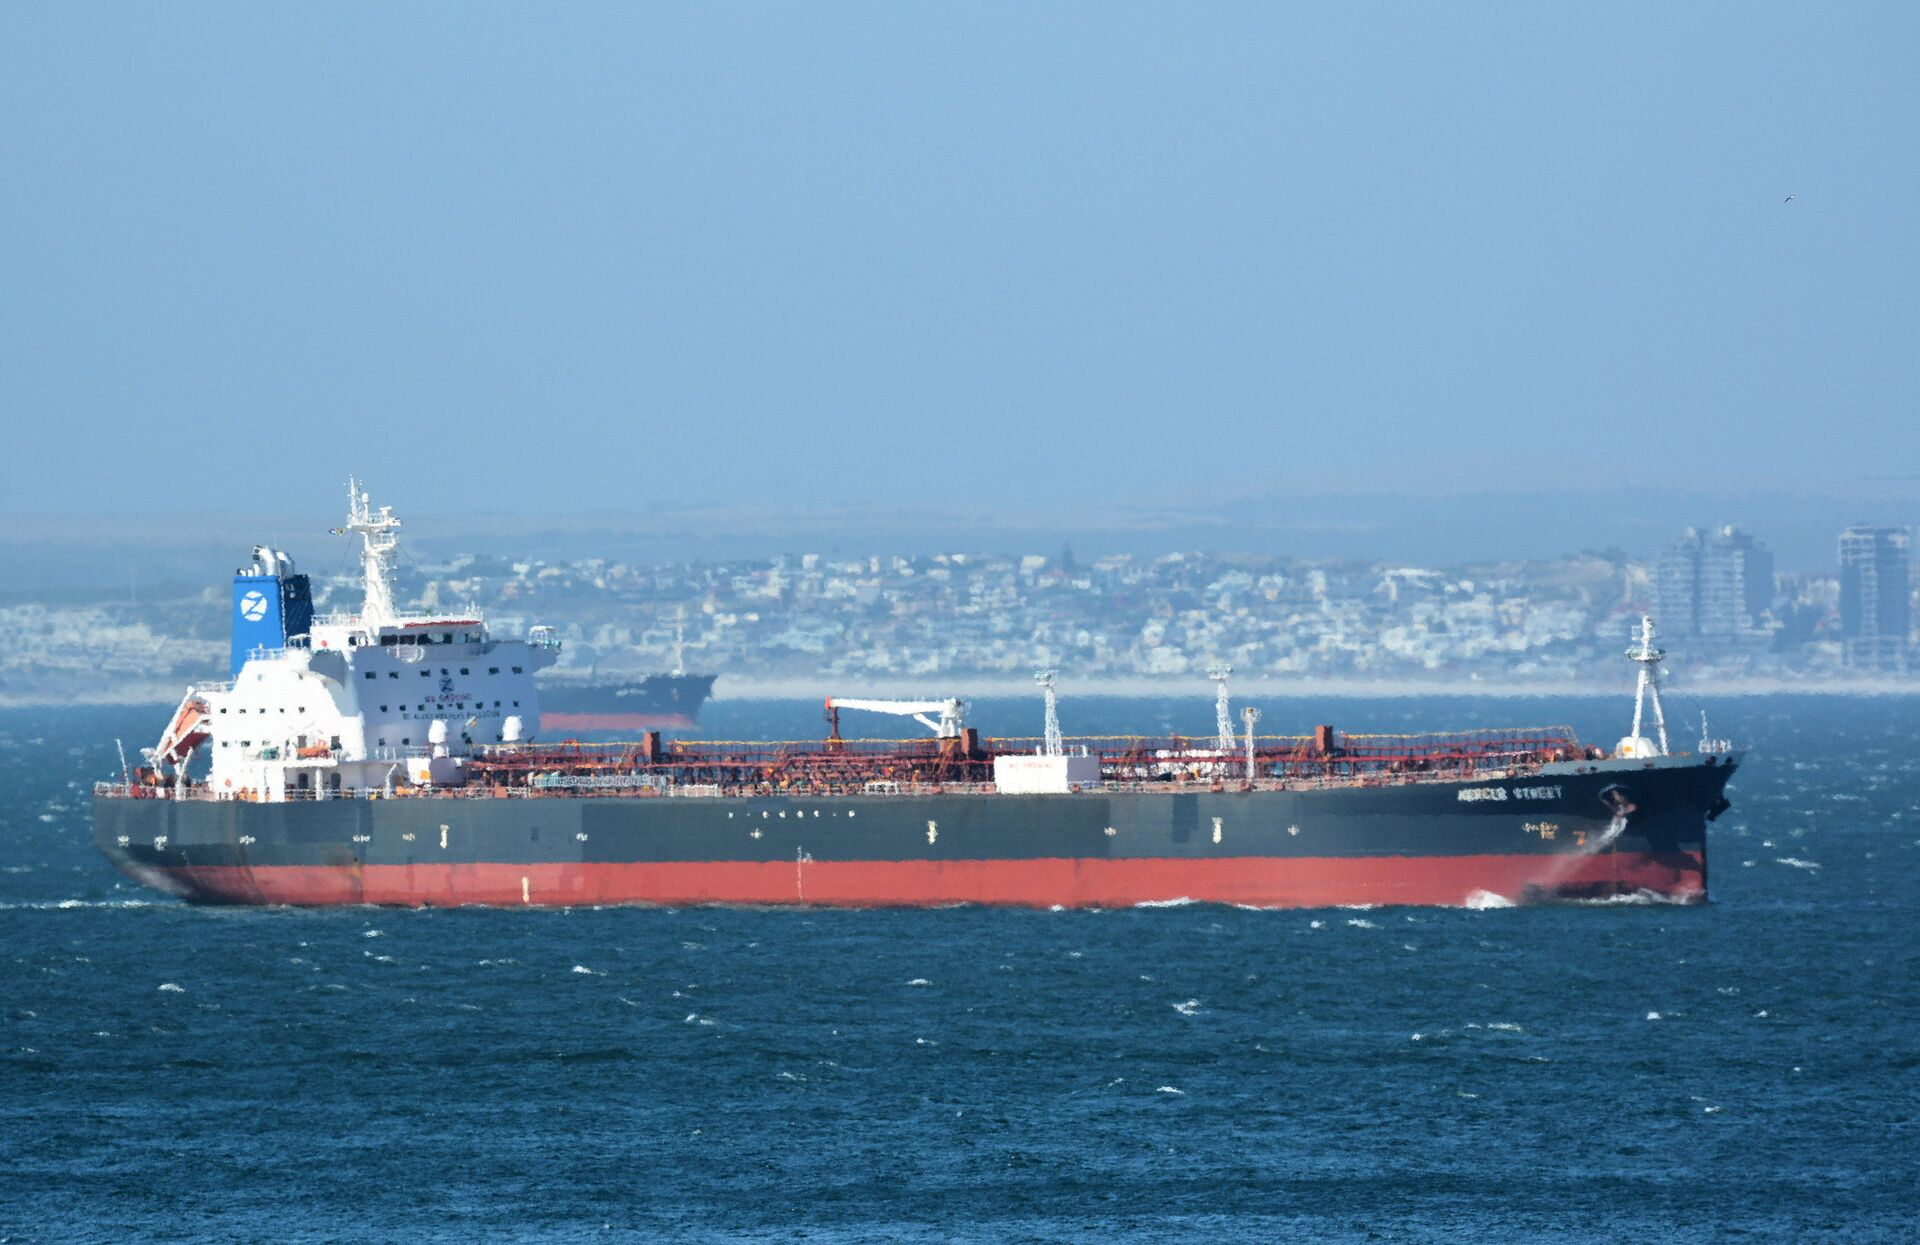 The Mercer Street, a Japanese-owned Liberian-flagged tanker managed by Israeli-owned Zodiac Maritime that was attacked off Oman coast as seen in Cape Town, South Africa, December 31, 2015  in this picture obtained from ship tracker website, MarineTraffic.com. Picture taken December 31, 2015.  Johan Victor/Handout via REUTERS THIS IMAGE HAS BEEN SUPPLIED BY A THIRD PARTY. MANDATORY CREDIT. NO RESALES. NO ARCHIVES. - Sputnik International, 1920, 07.09.2021